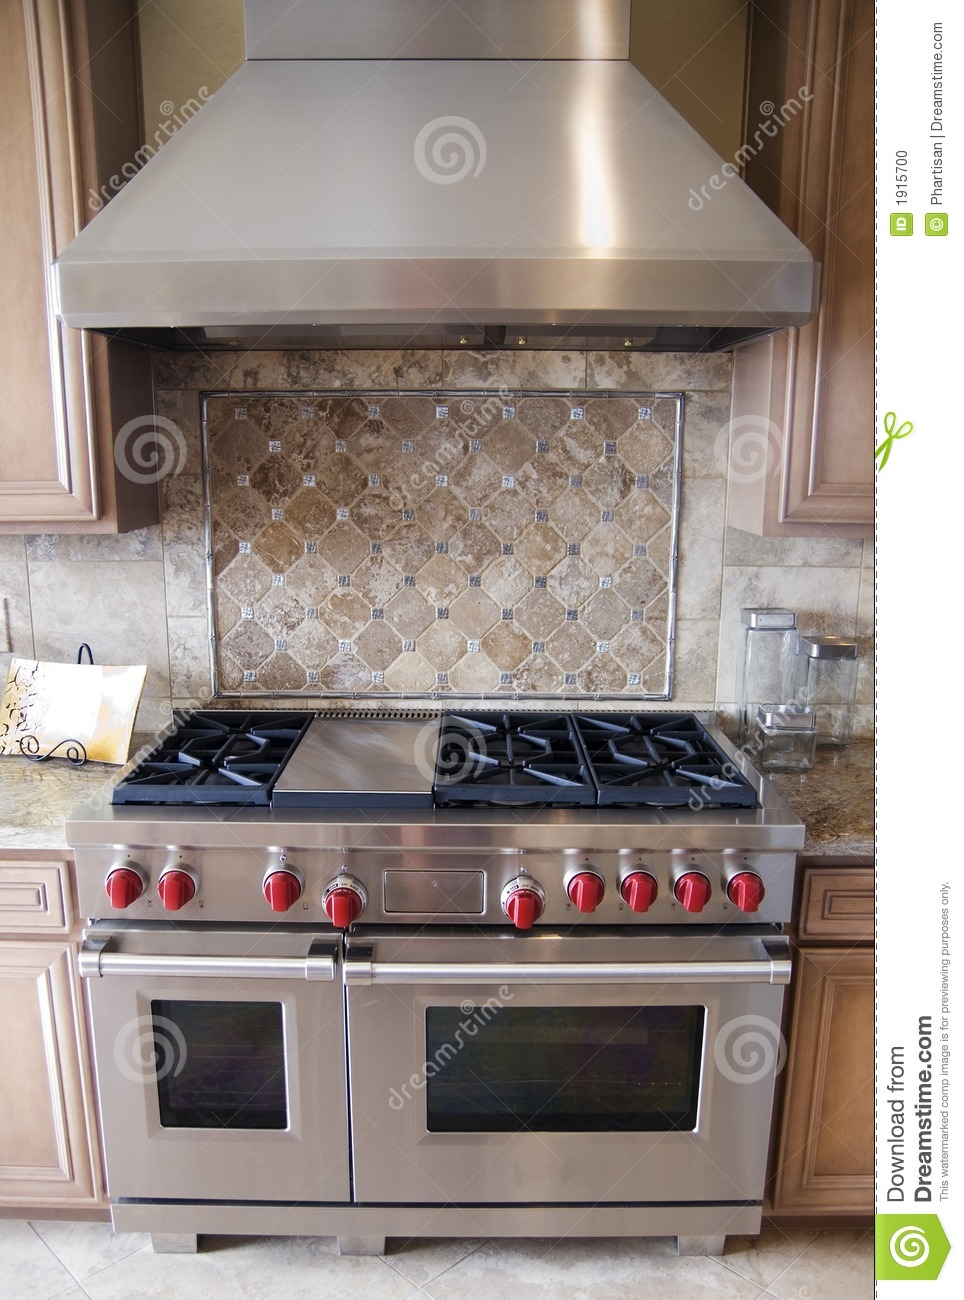 Luxury Kitchen Oven Ranfe Stock Photo Image 1915700